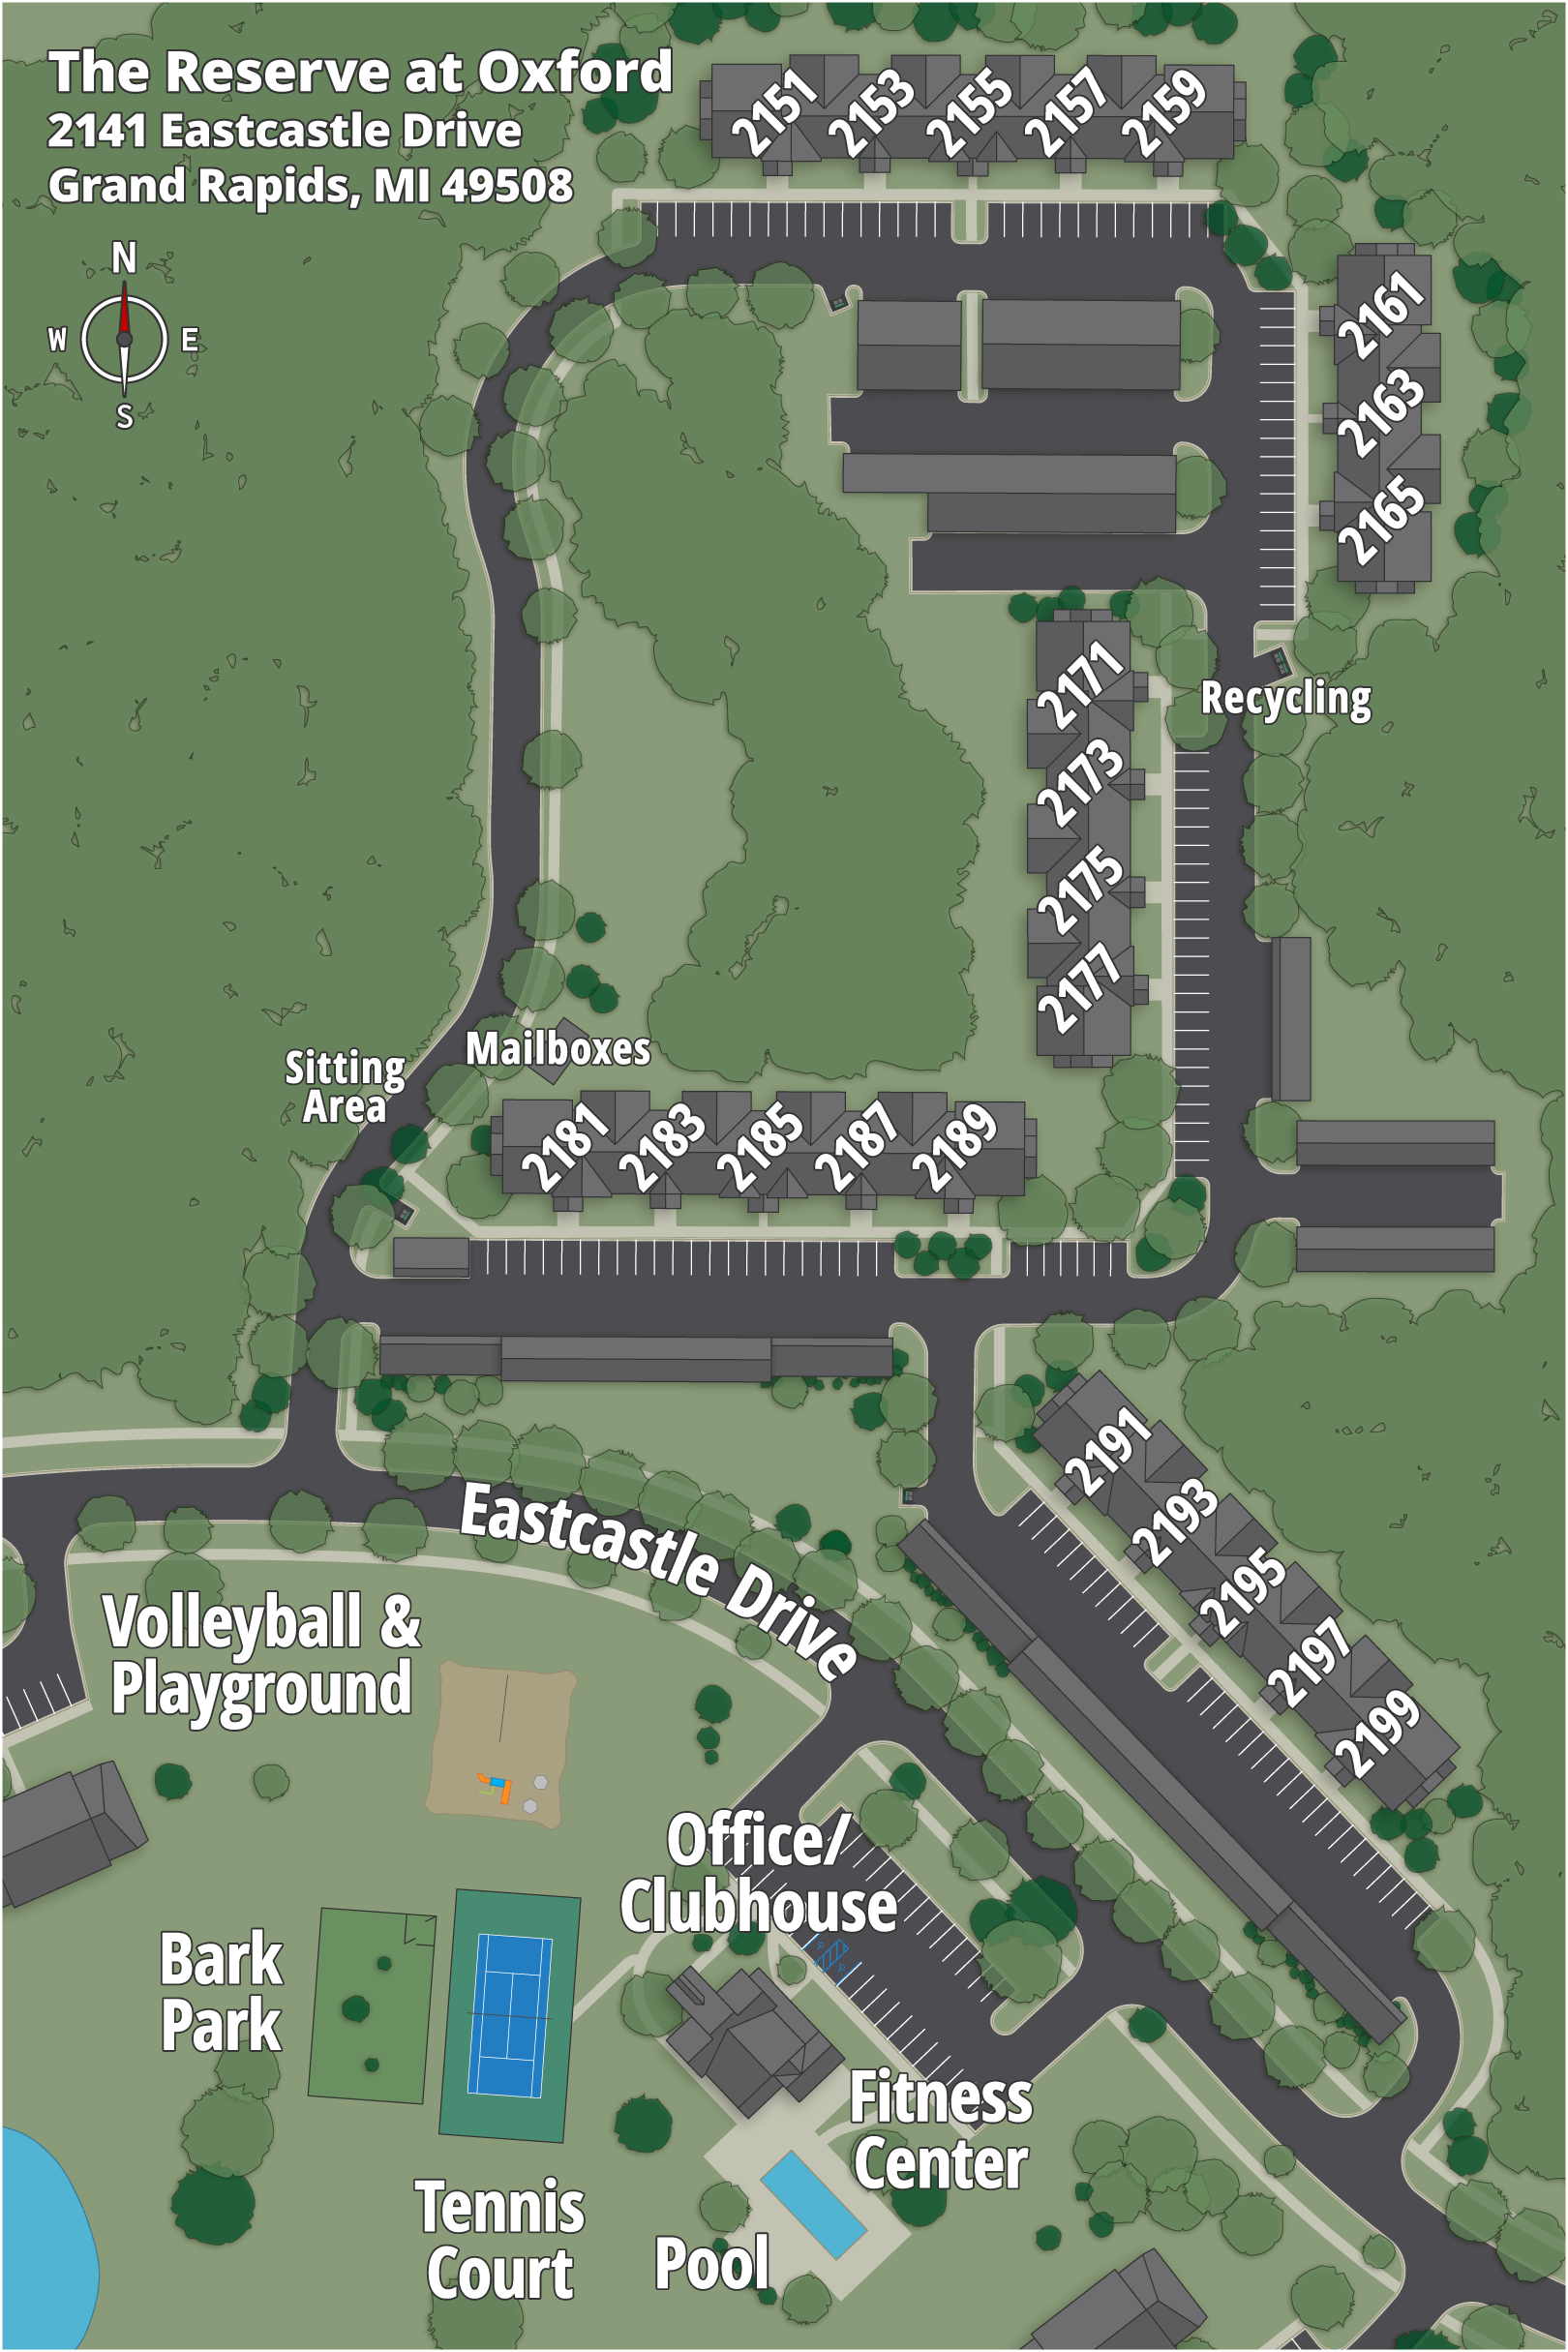 The Reserve at Oxford Map